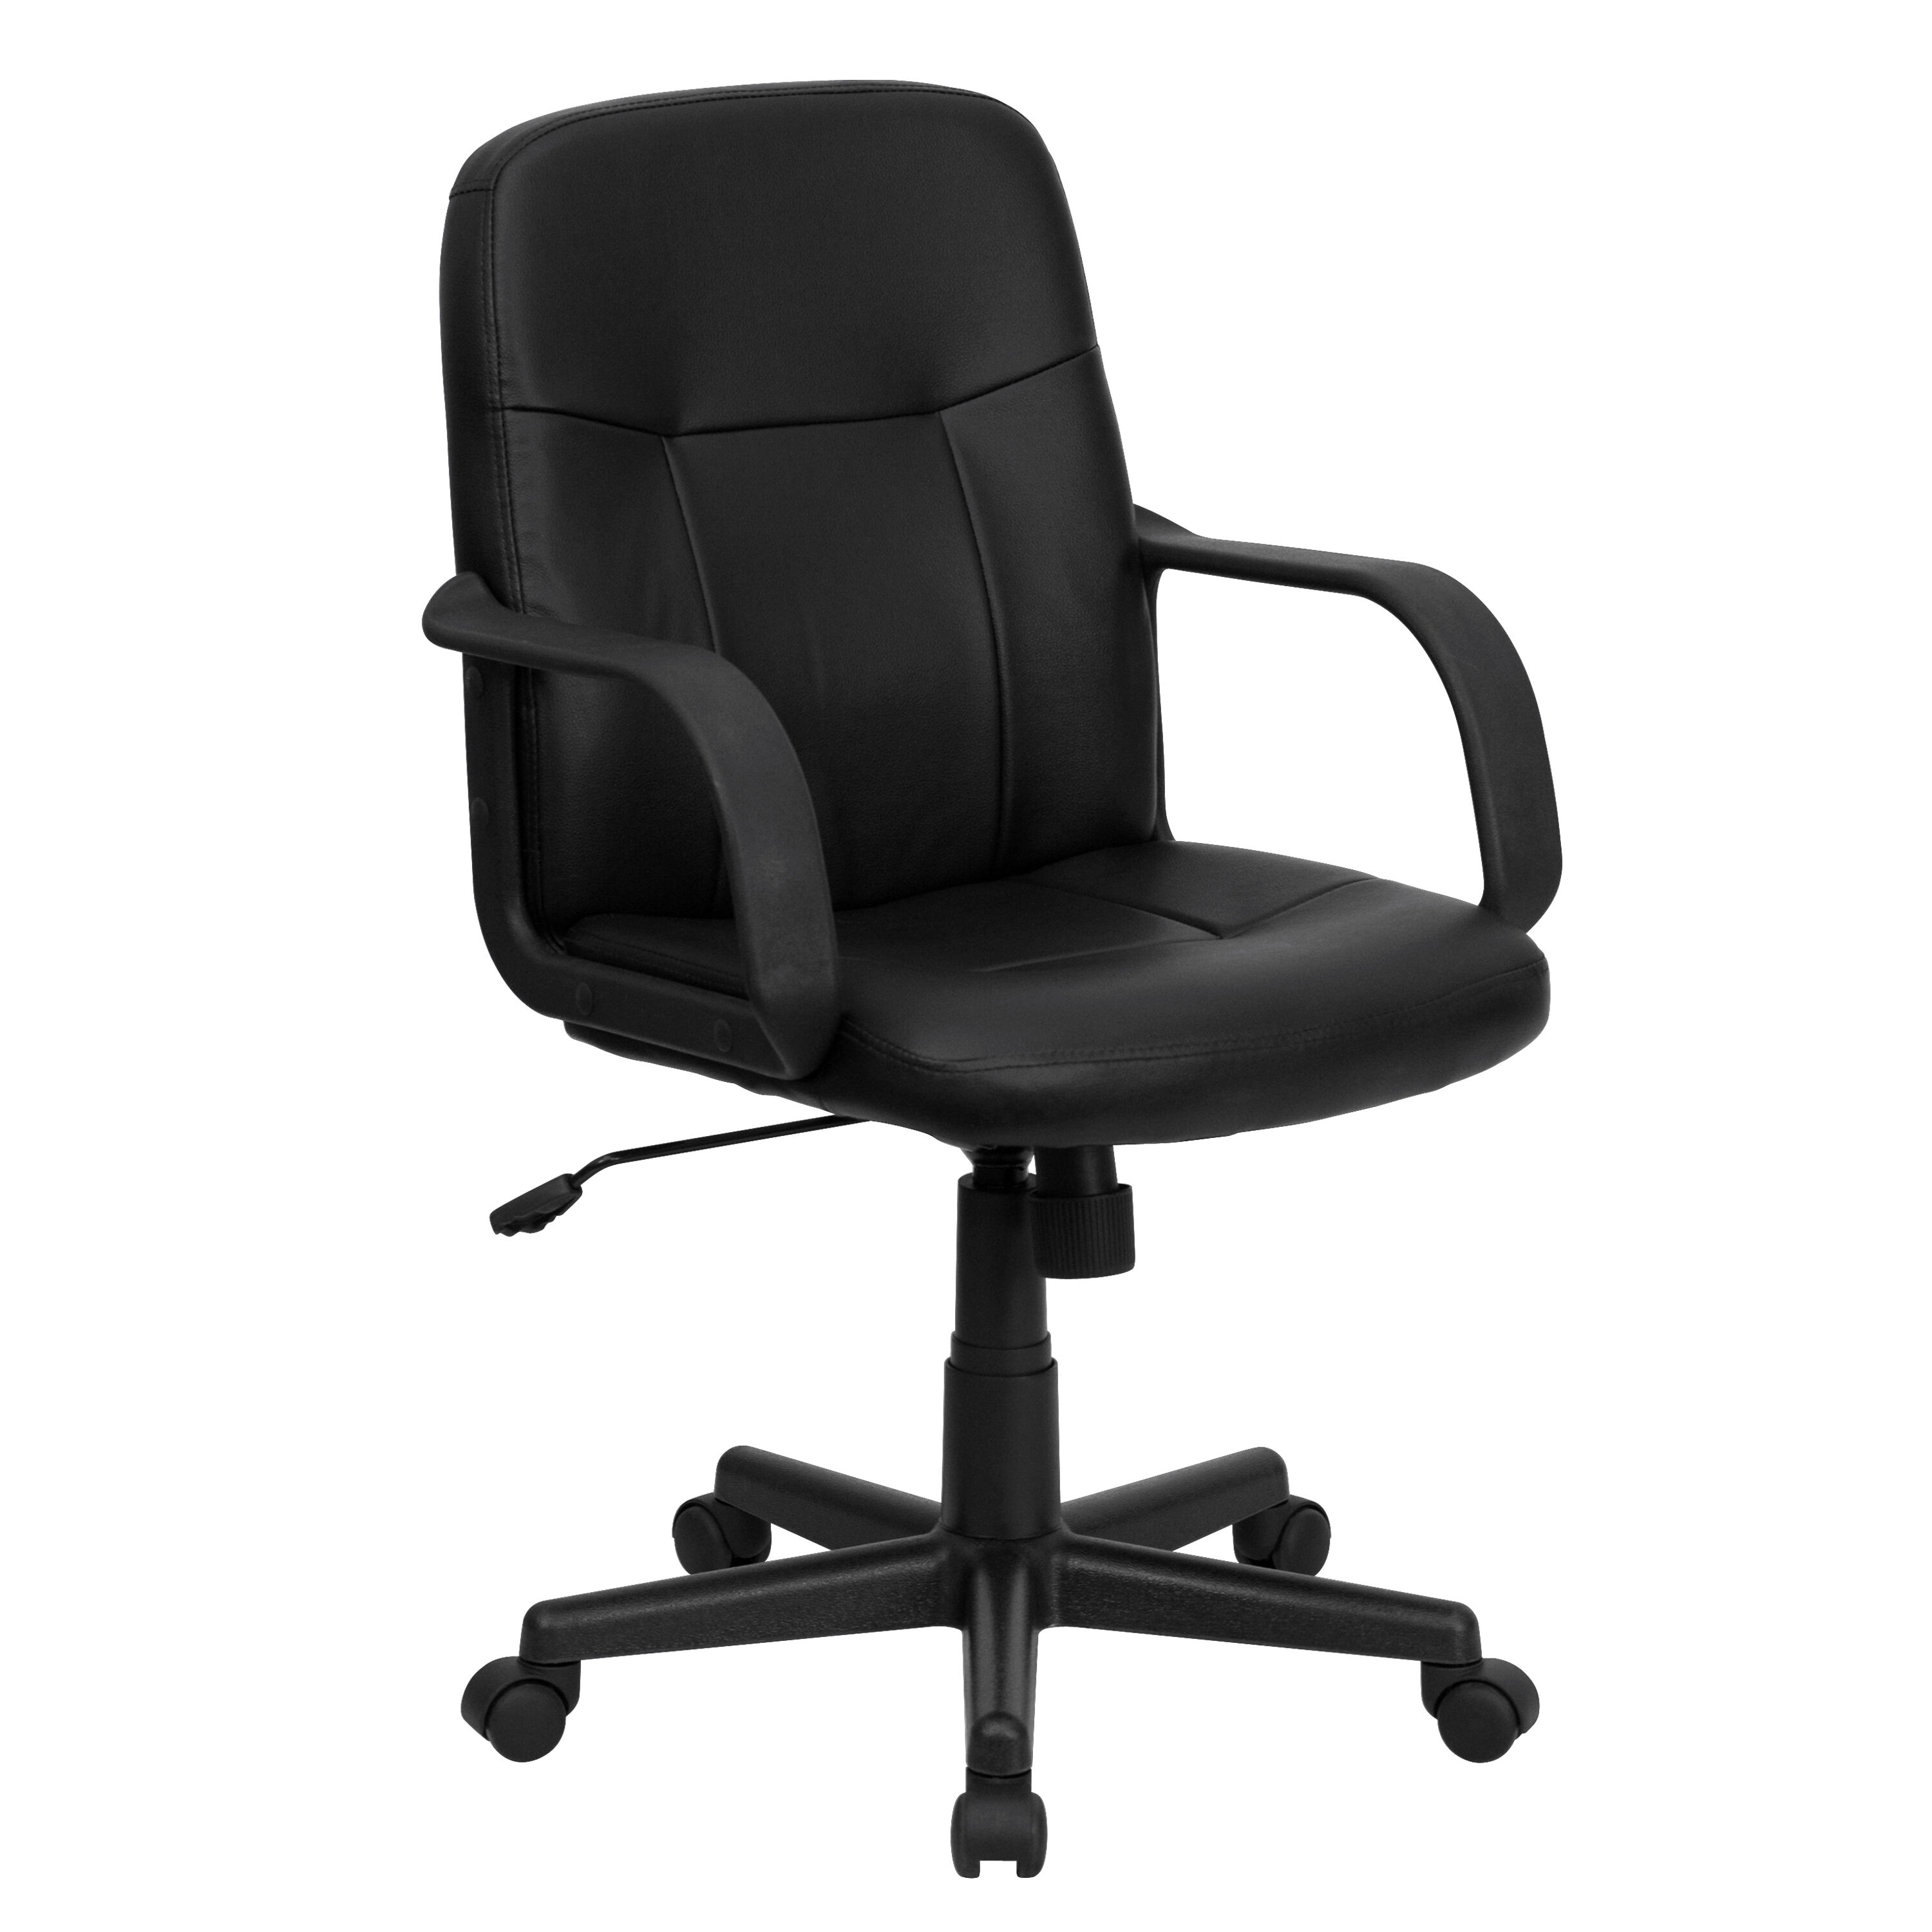 ... Our Mid Back Black Glove Vinyl Executive Swivel Chair With Arms Is On  Sale Now ...